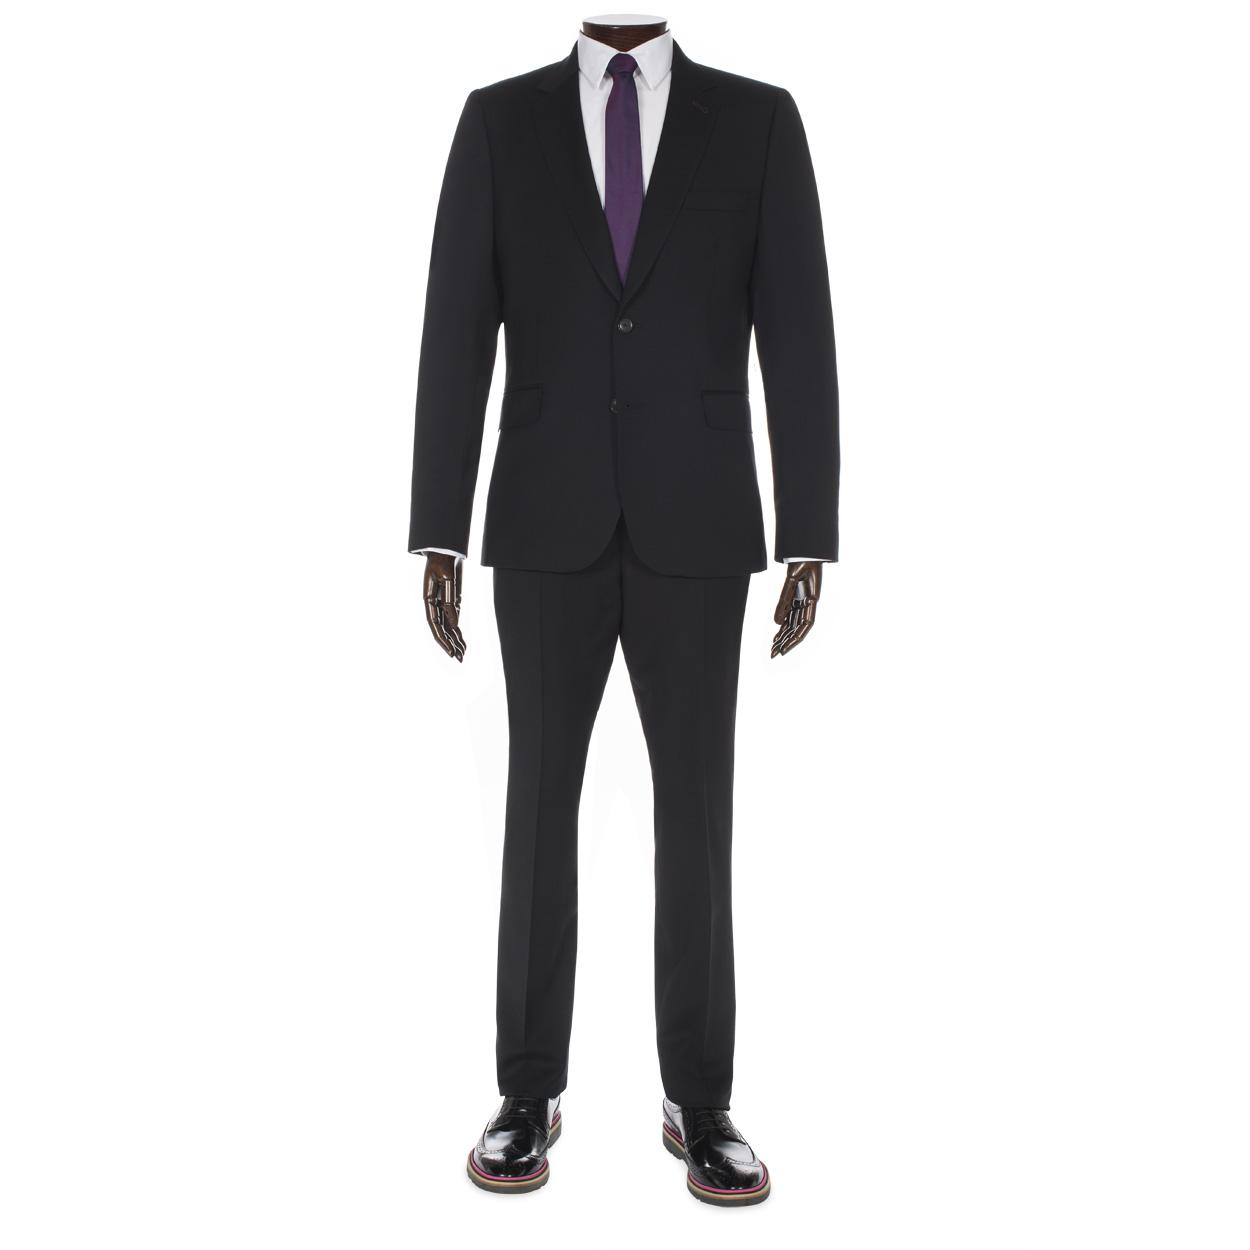 Boy Suit Silhouette Paul Smith Men S Suits